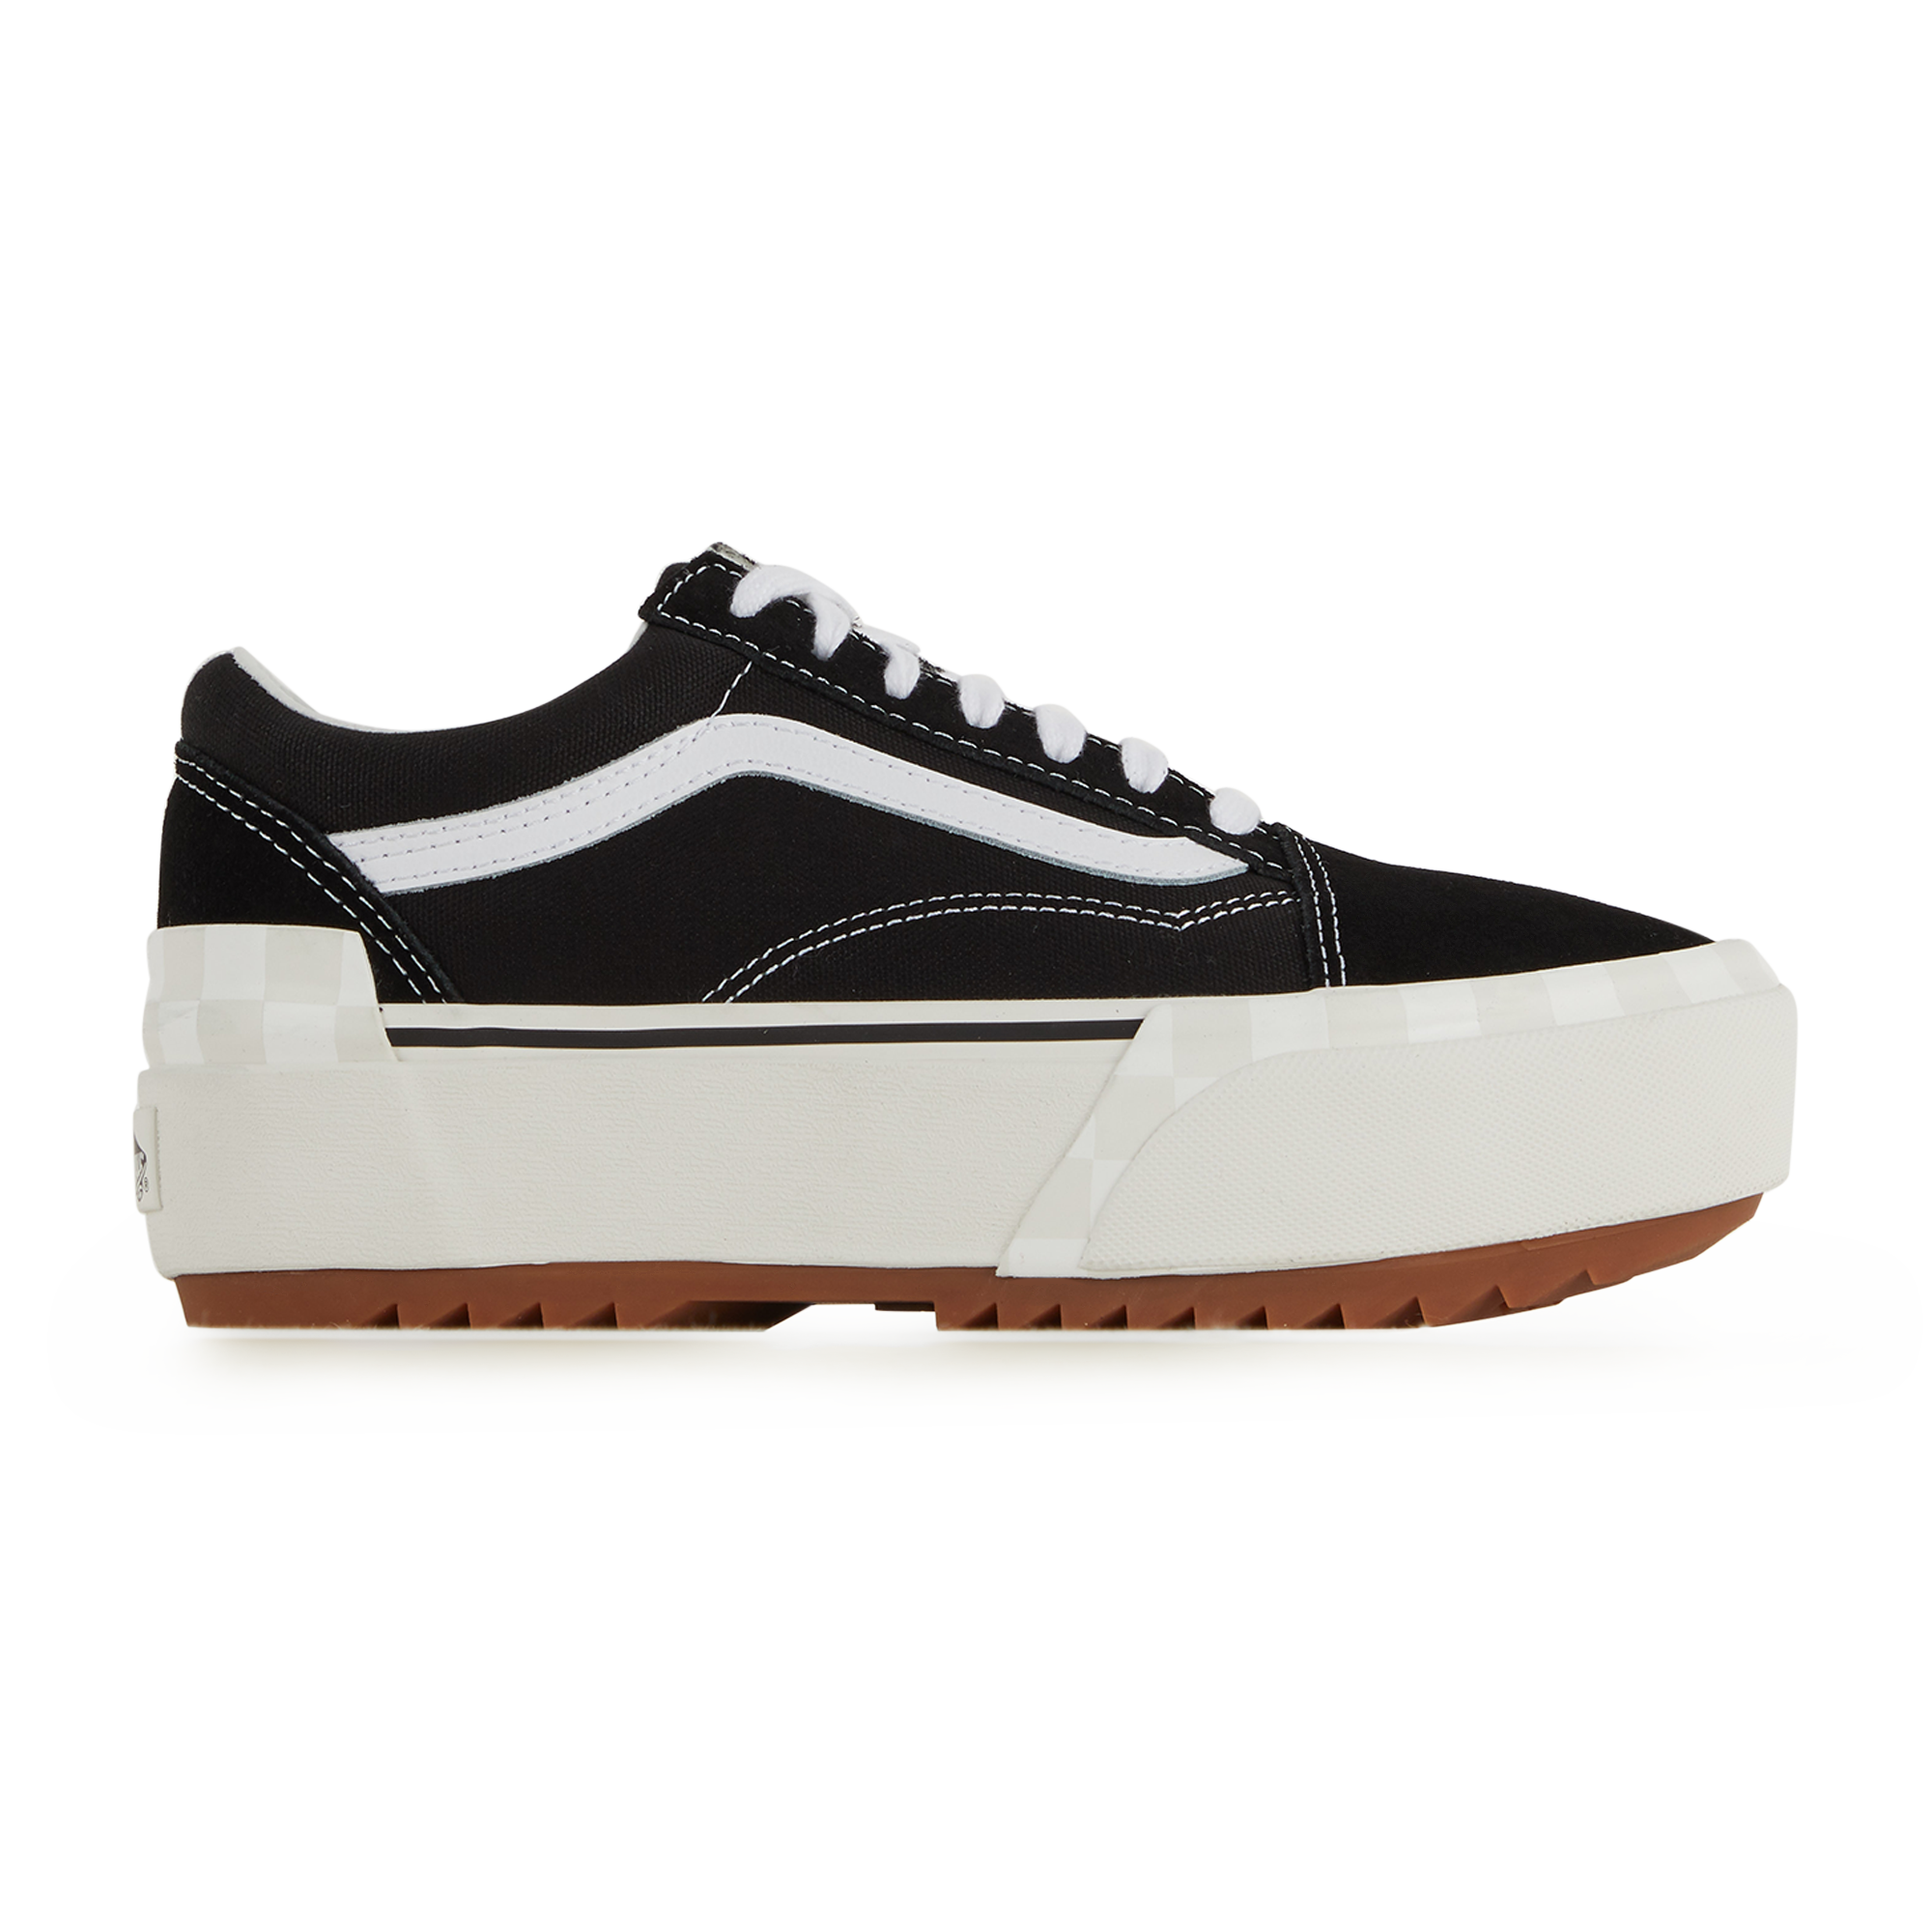 Vans Old Skool Stacked - Femme Chaussures VN0A4U155ZN 40 pas cher